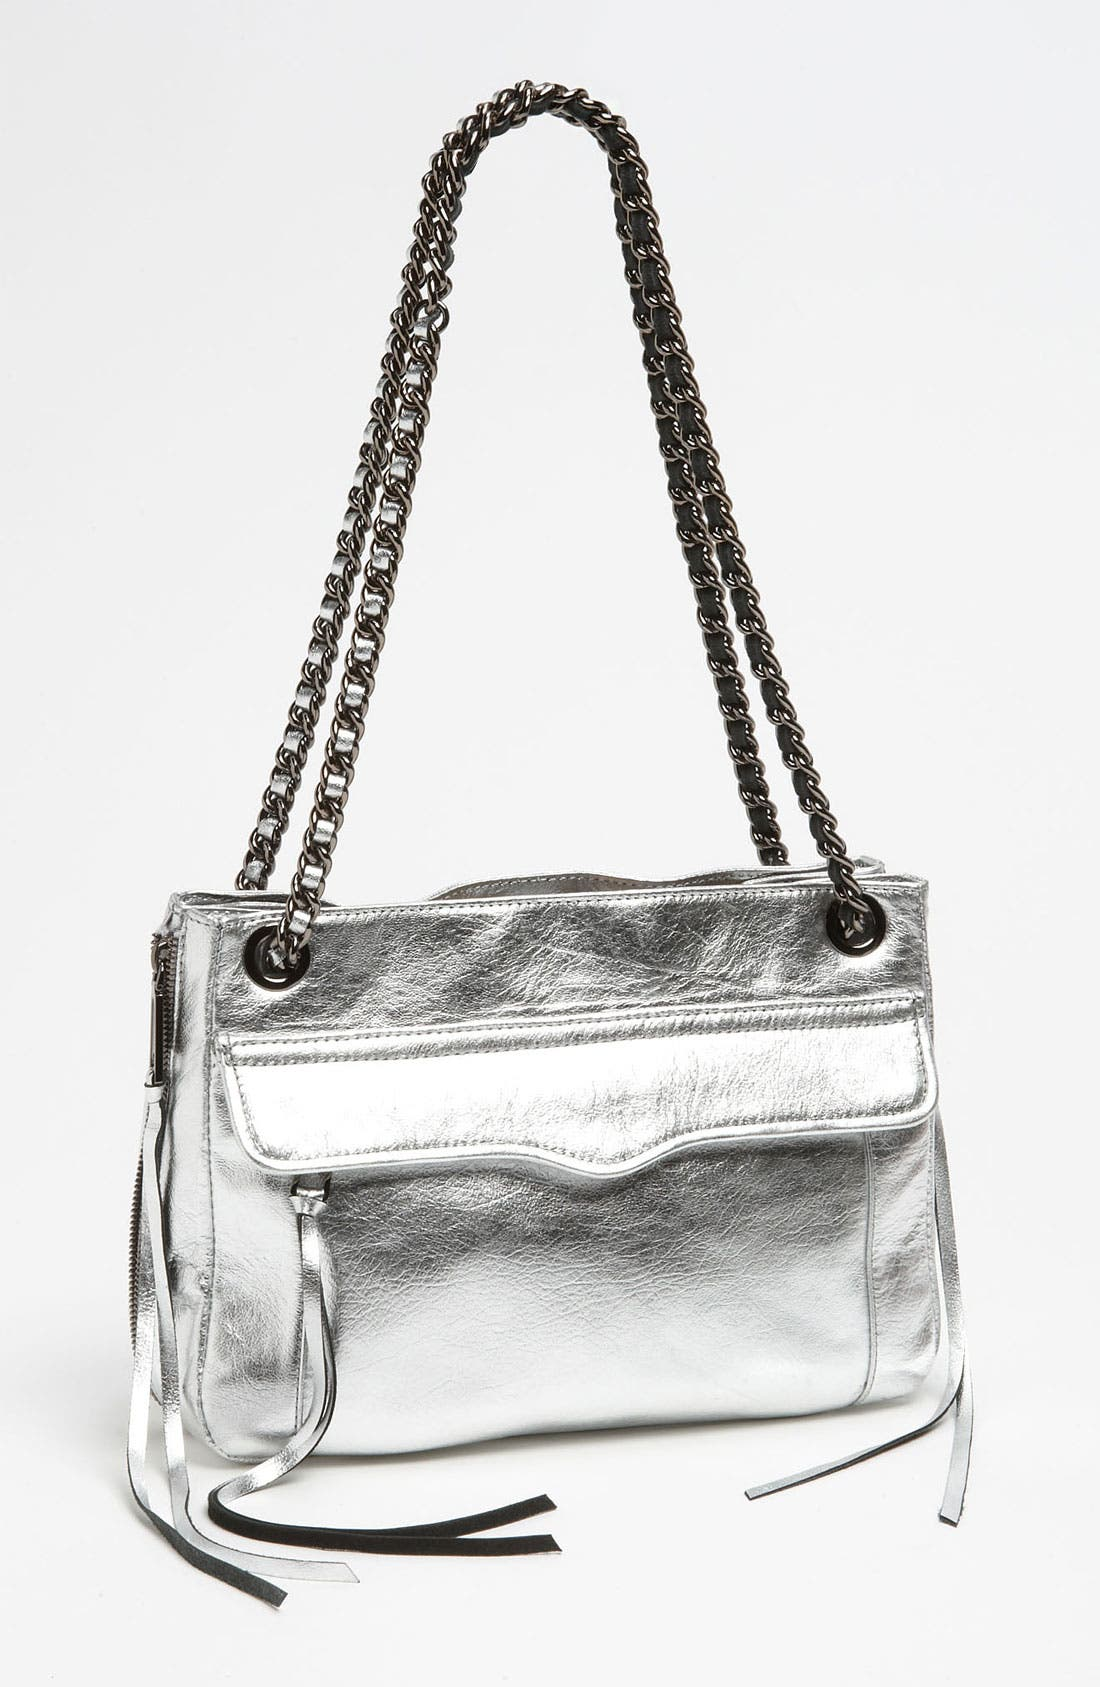 Main Image - Rebecca Minkoff 'Swing' Metallic Leather Shoulder Bag